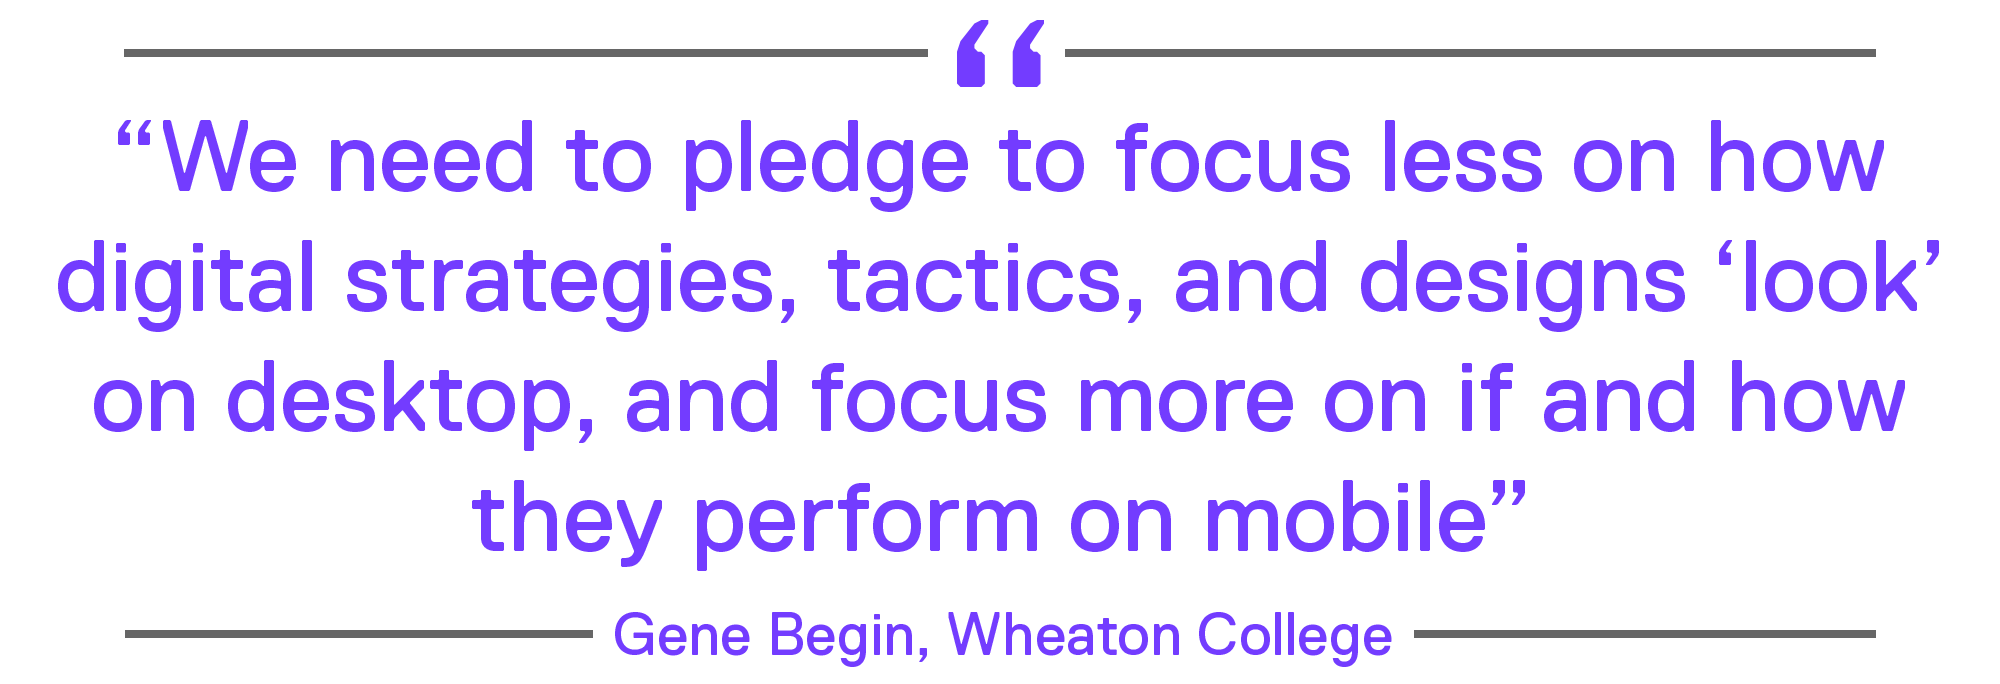 """We need to pledge to focus less on how digital strategies, tactics, and designs 'look' on desktop, and focus more on if and how they perform on mobile."""" – Gene Begin, Wheaton College"""